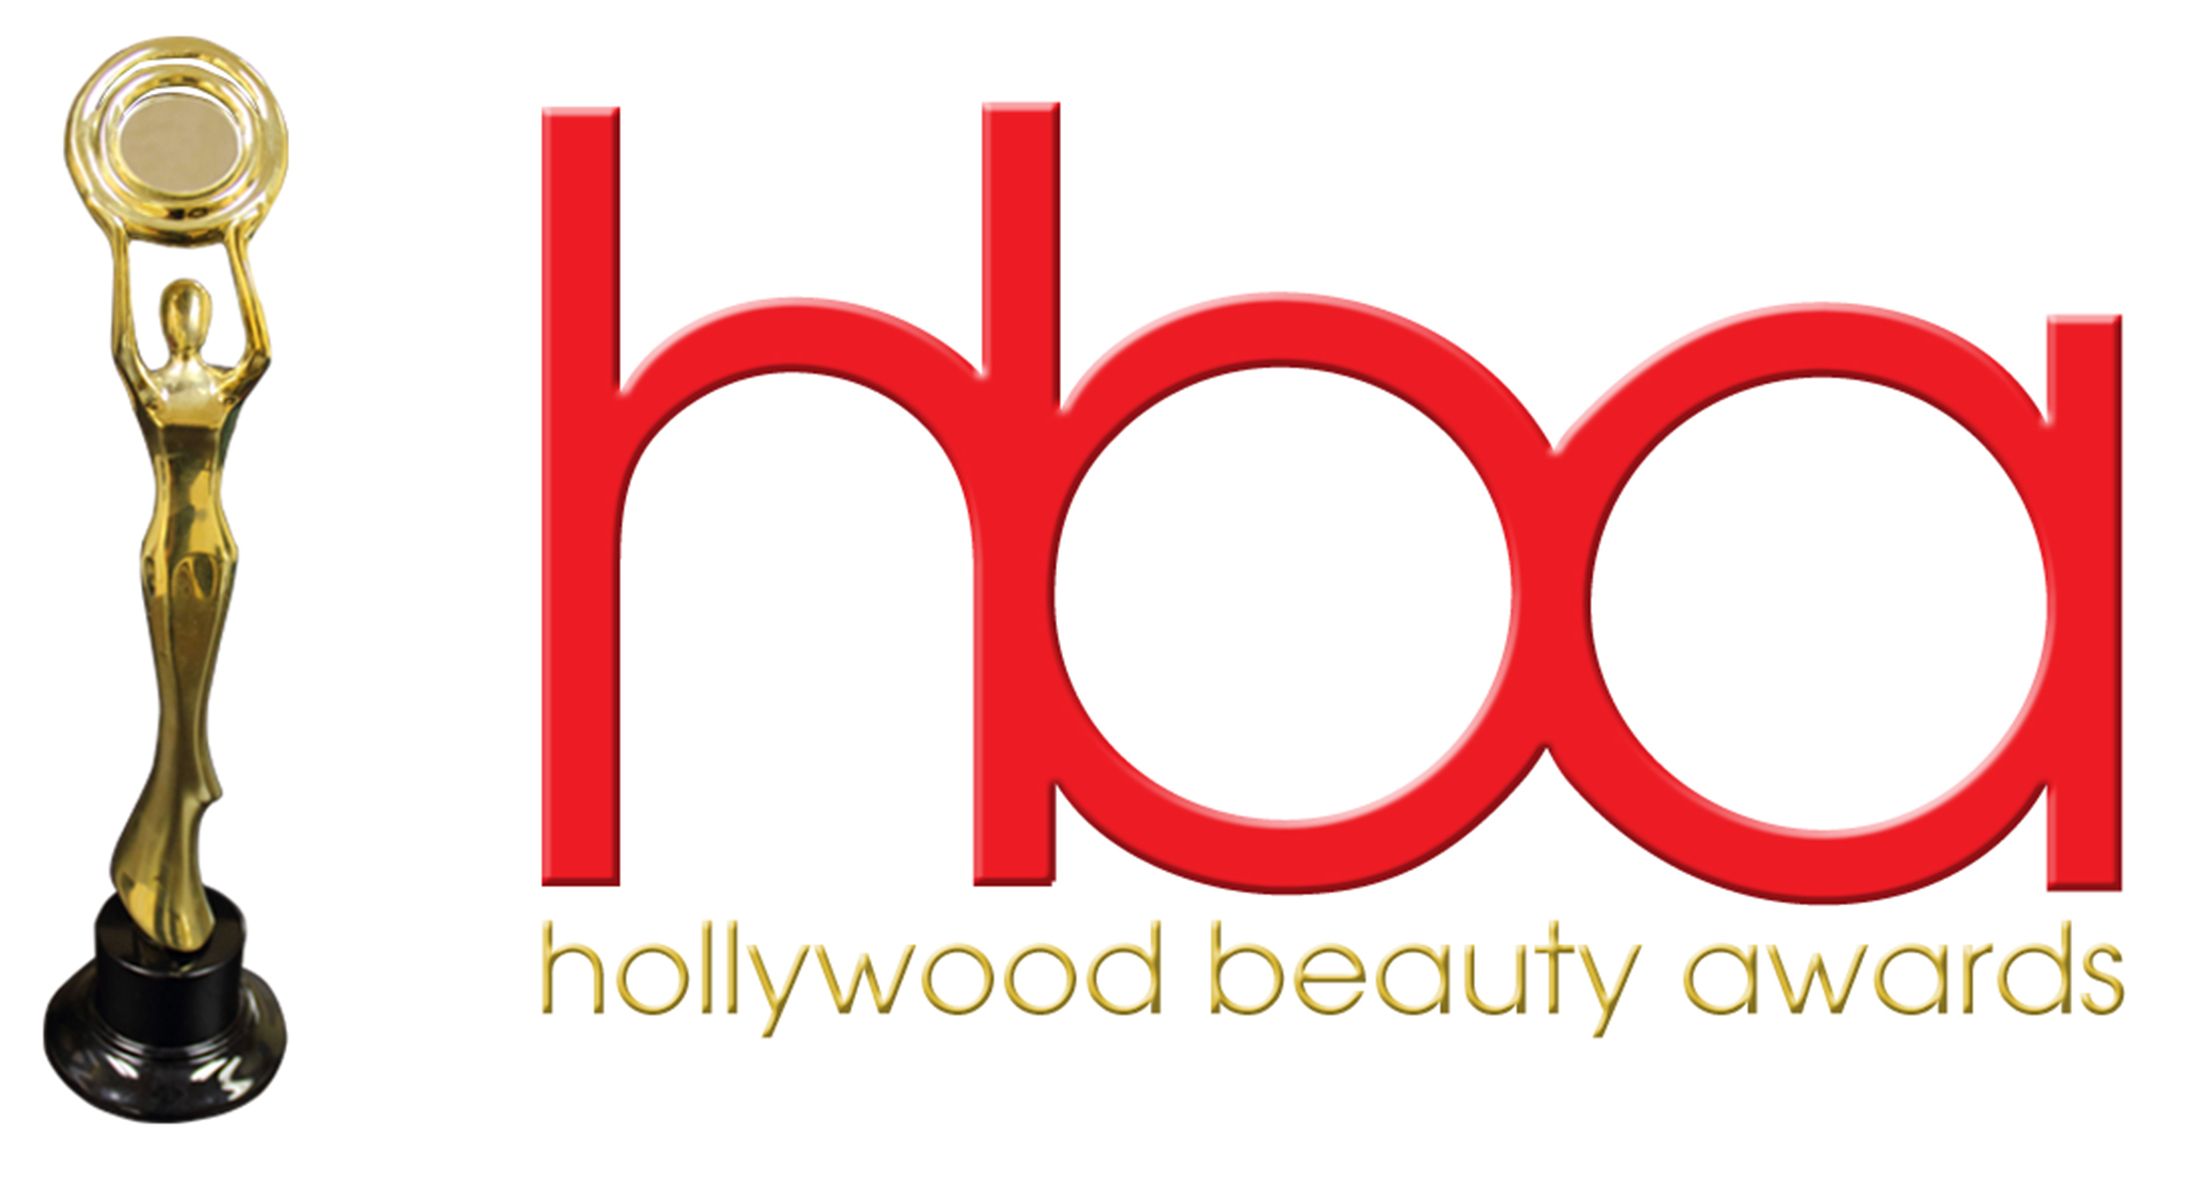 4th Hollywood Beauty Awards, Sunday, February 25, Presented by LATF USA